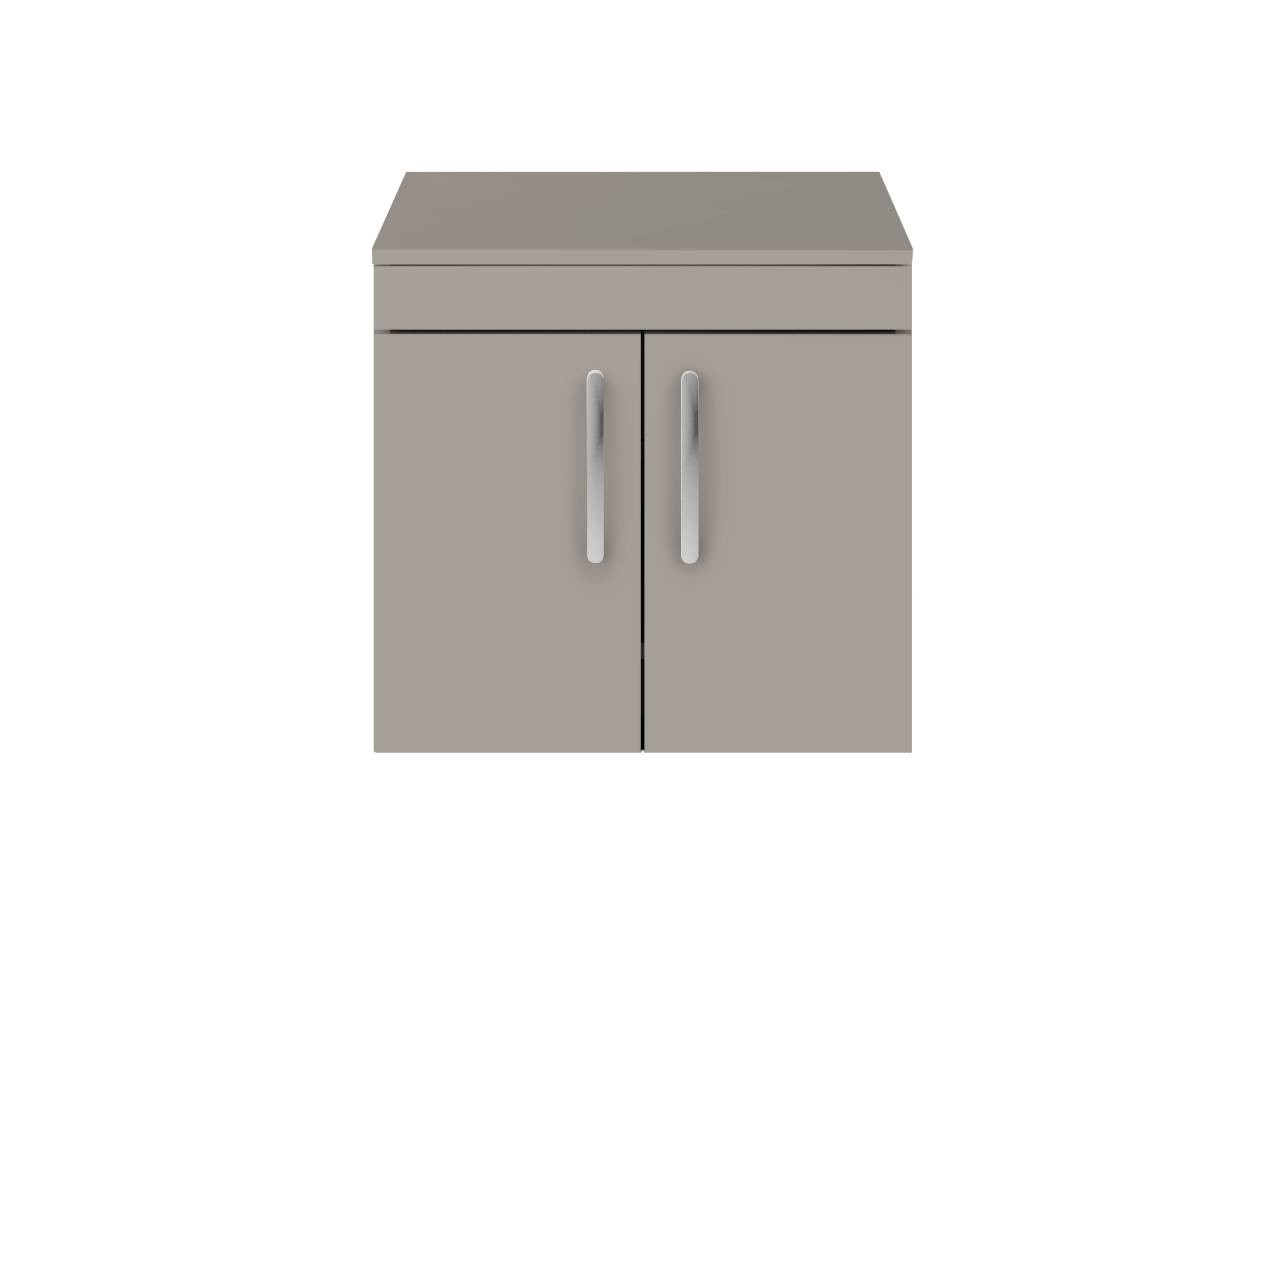 Premier Athena Stone Grey 600mm Wall Hung 2 Door Vanity Unit with Worktop - ATH090W